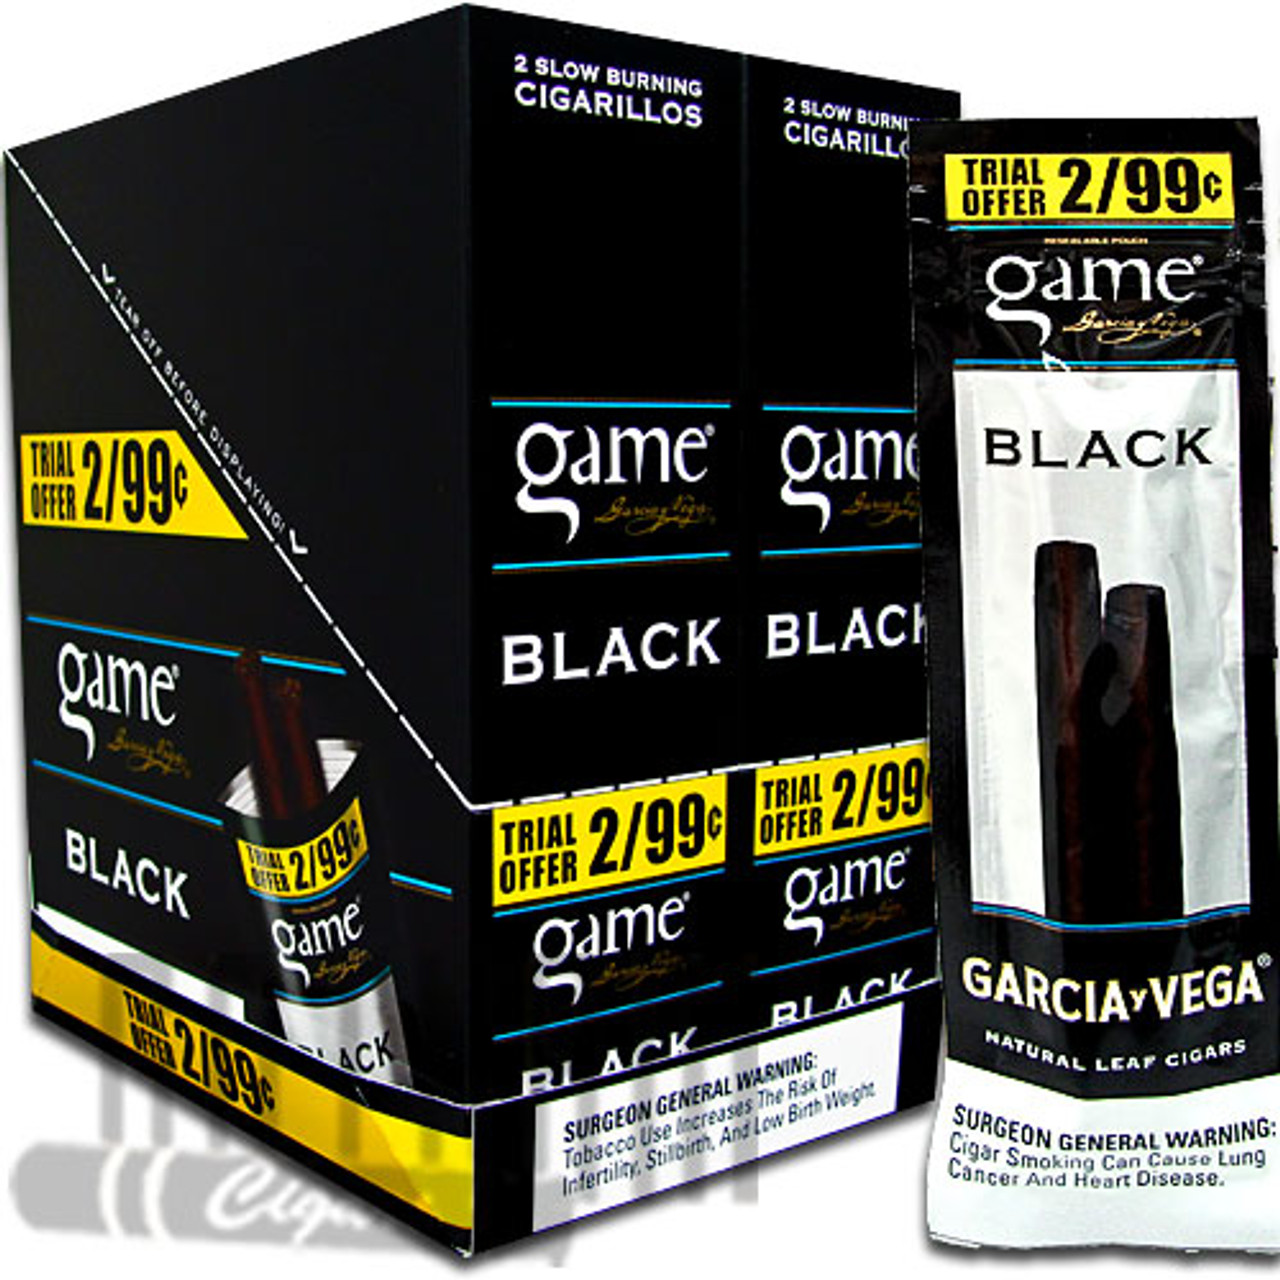 Game Cigarillos Black